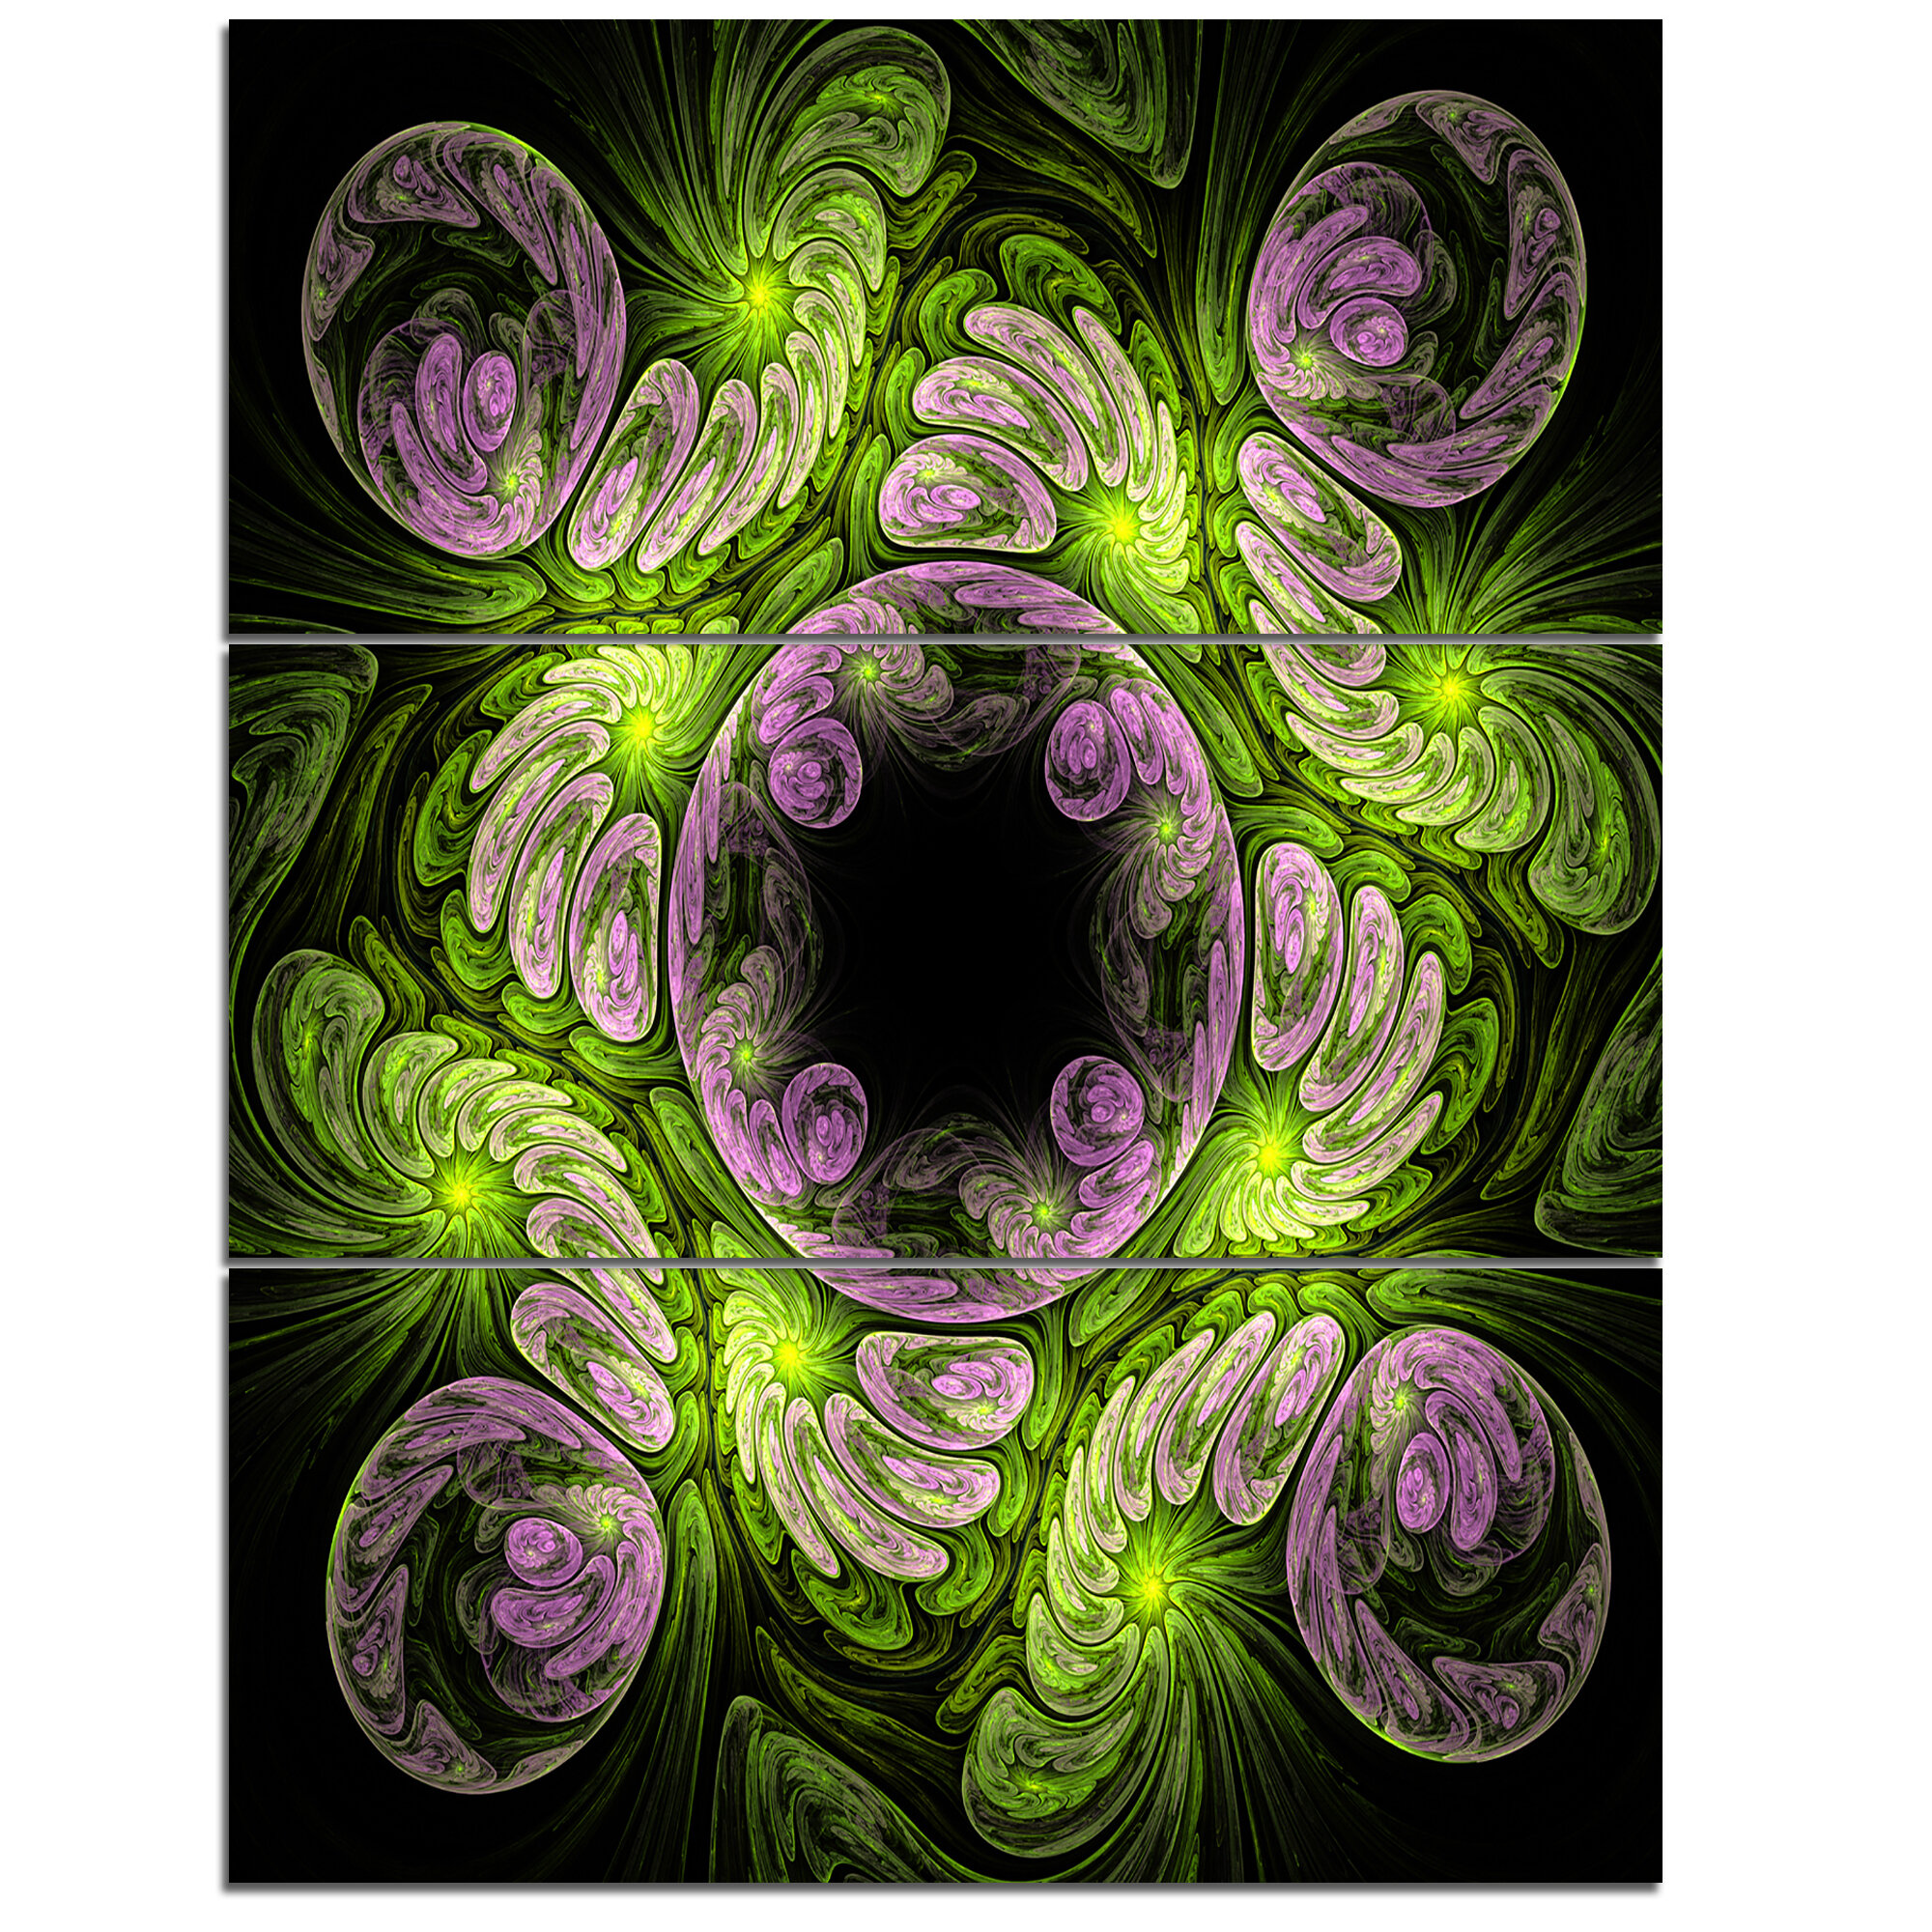 Designart Glittering Dark Fractal Flower 3 Piece Graphic Art On Wrapped Canvas Set Wayfair